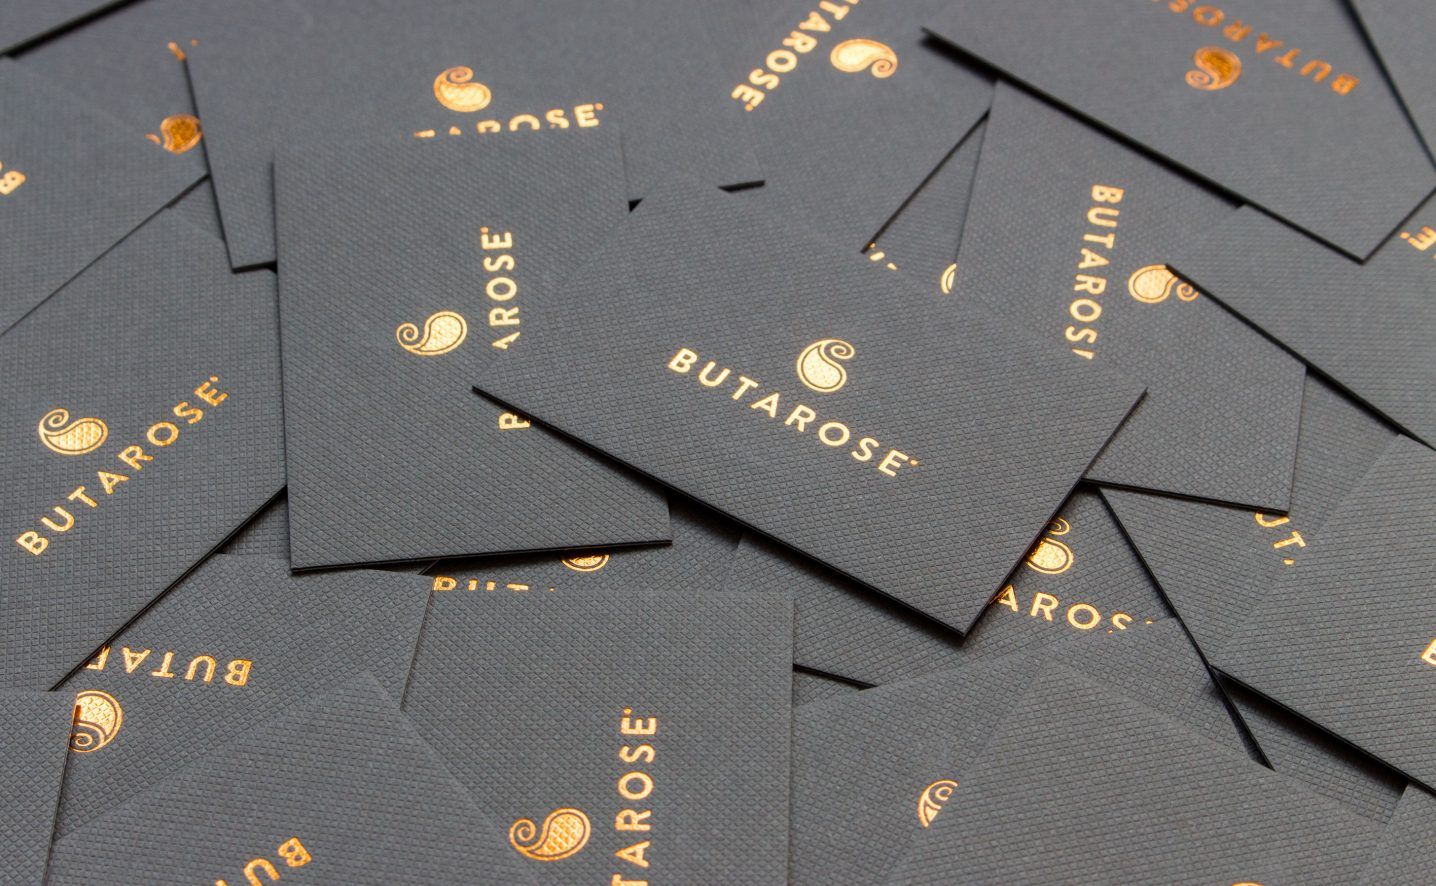 Butarose brand roll-out